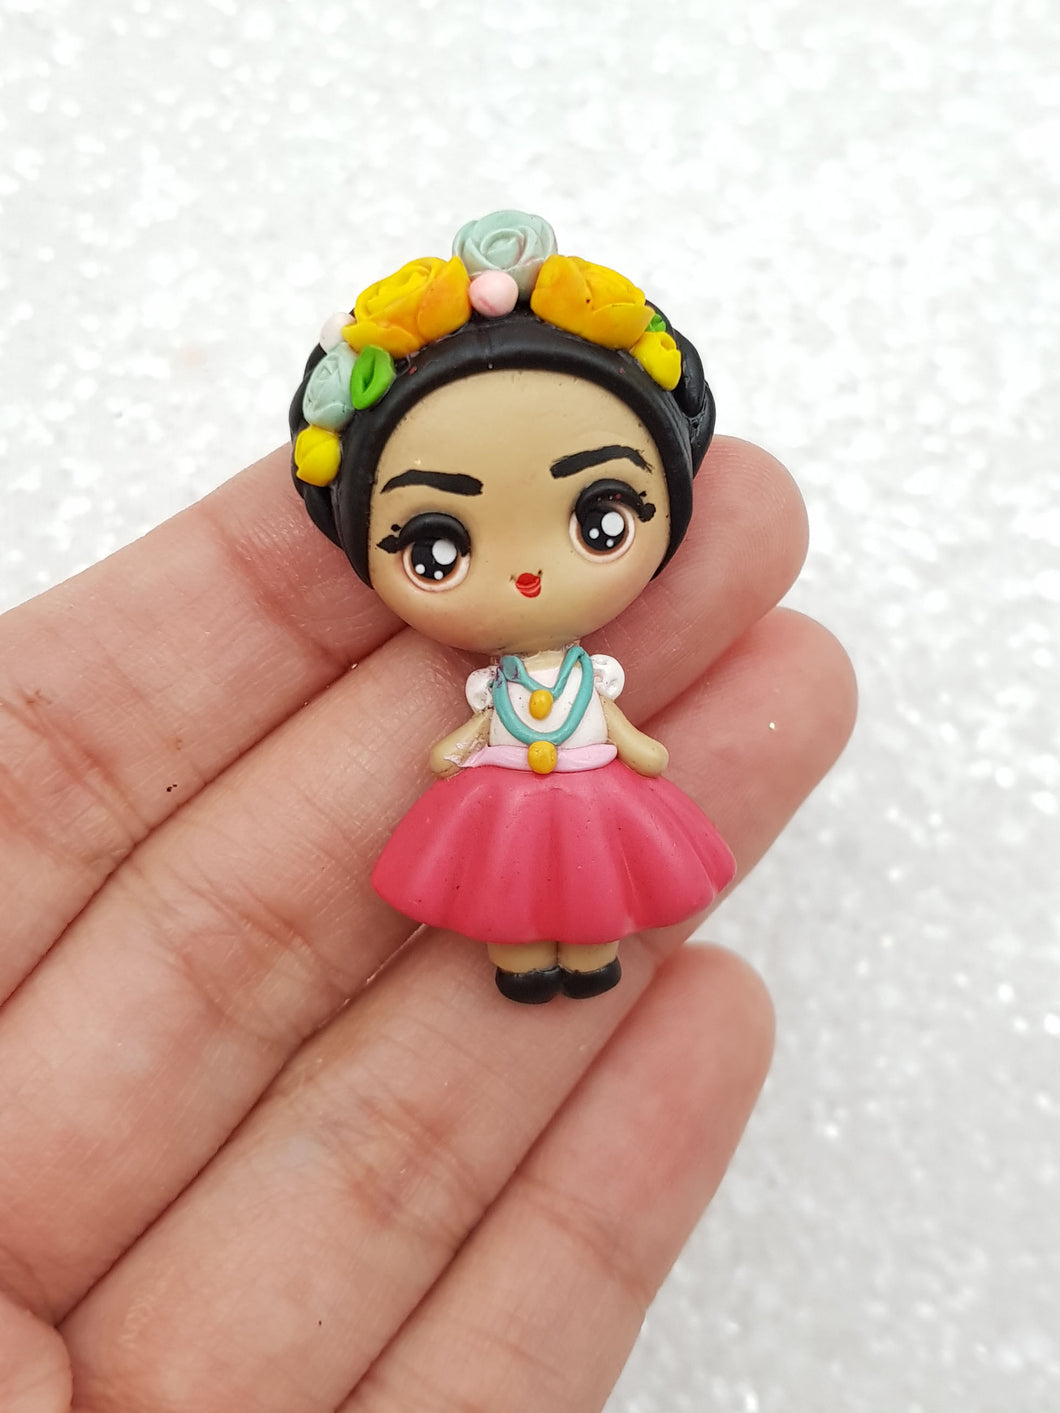 Clay Charm Embellishment - FRIDA KAHLO big eyes - Crafty Mood